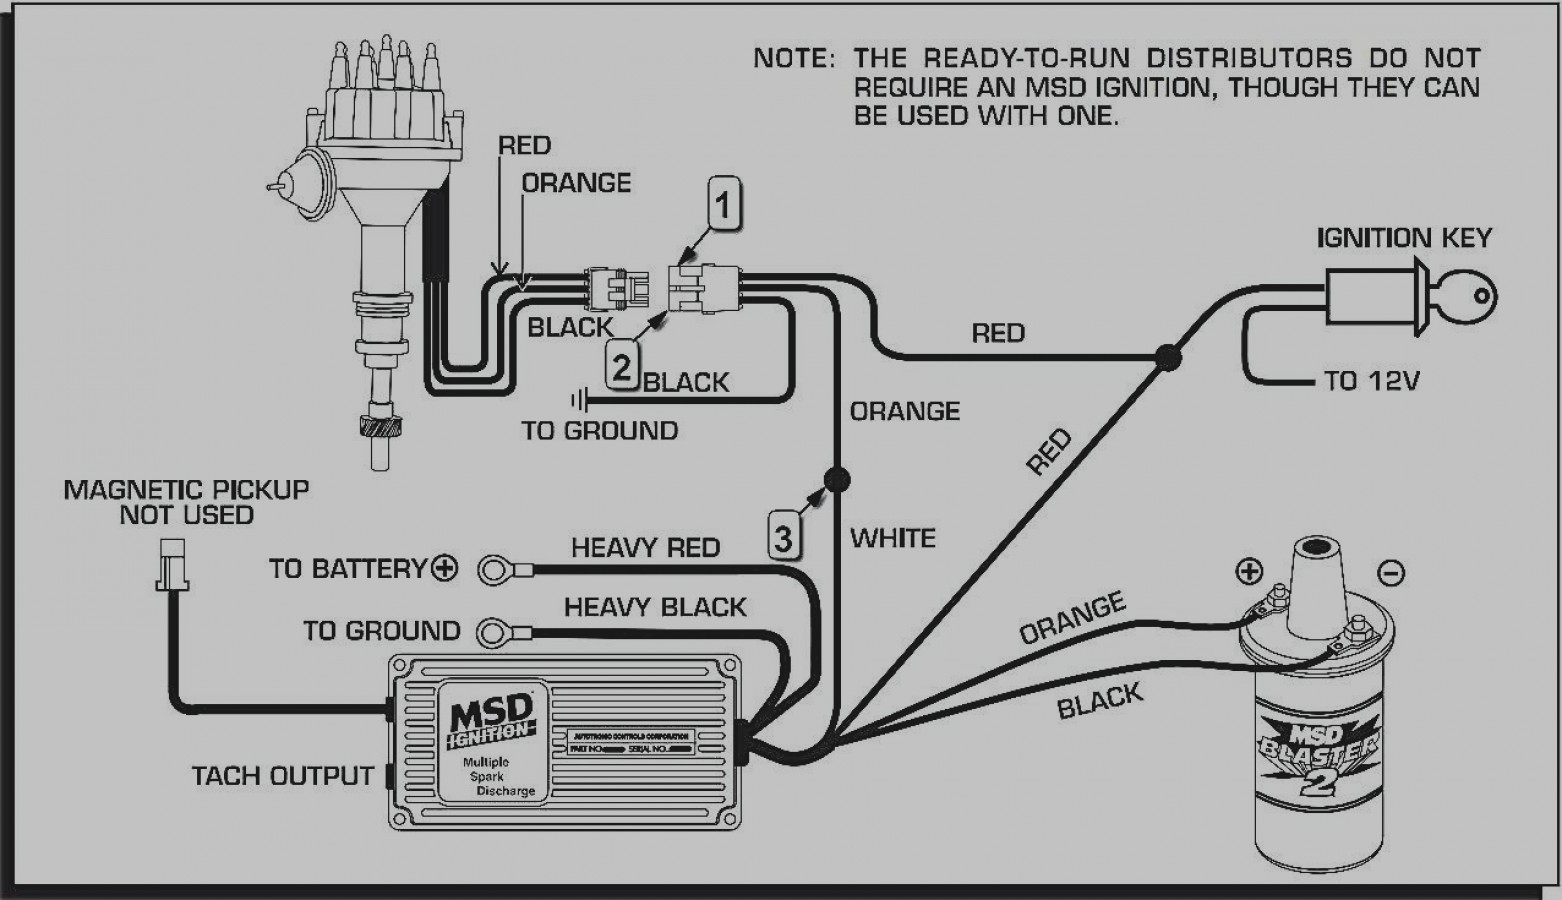 spark plug wiring diagram chevy 350 Download-26 Trend Spark Plug Wire Diagram Wiring Chevy 350 New Image 1-p